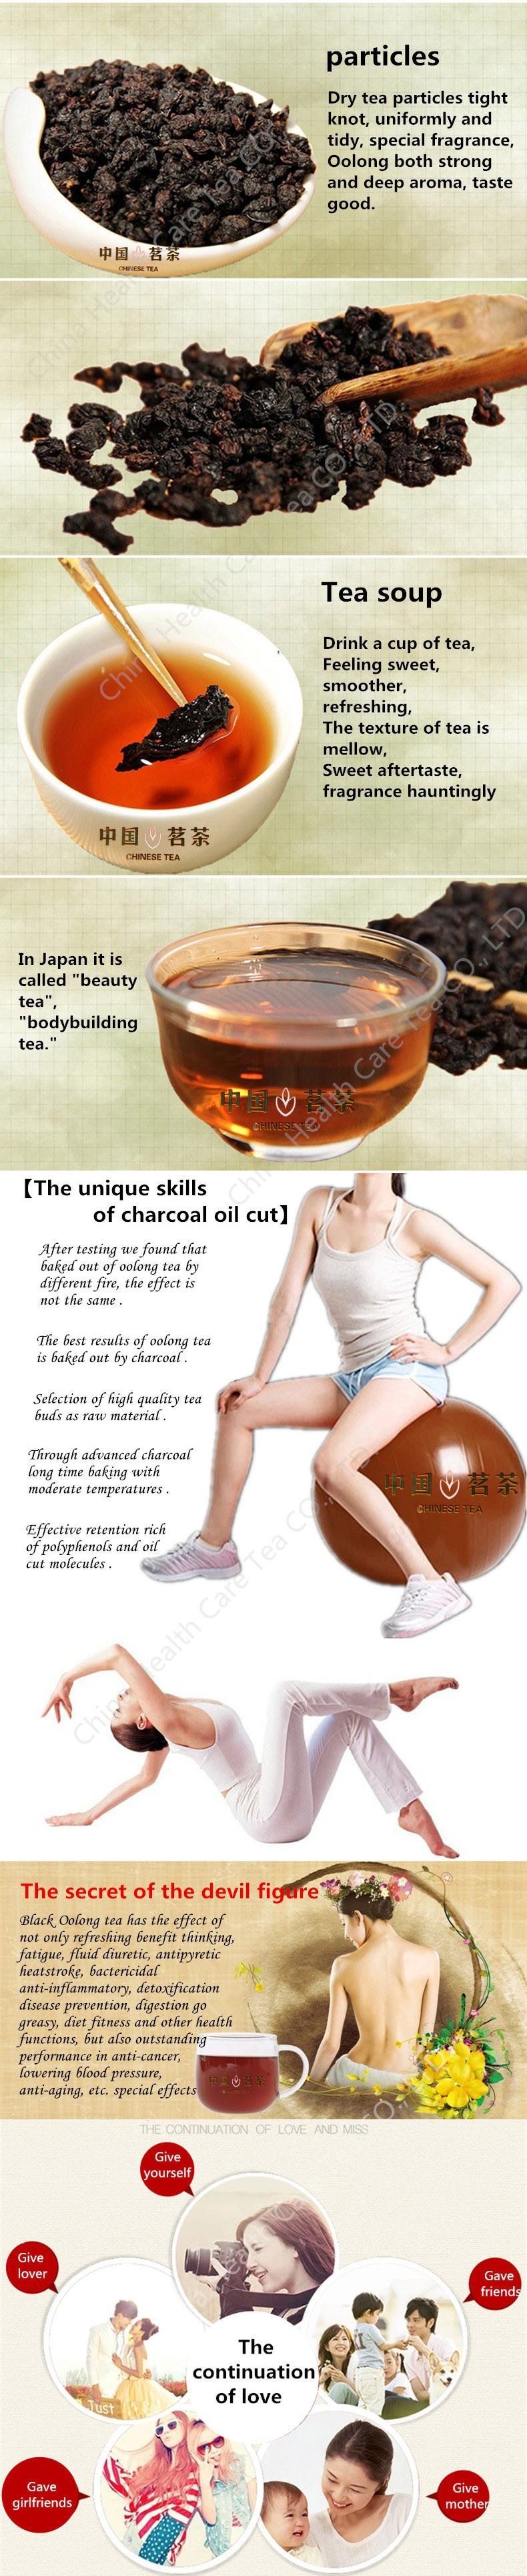 High Quality Chinese Oil Cut Black Oolong Tea Fresh Natural Slimming Tea High Cost-effective Weight Loss Tea 125g